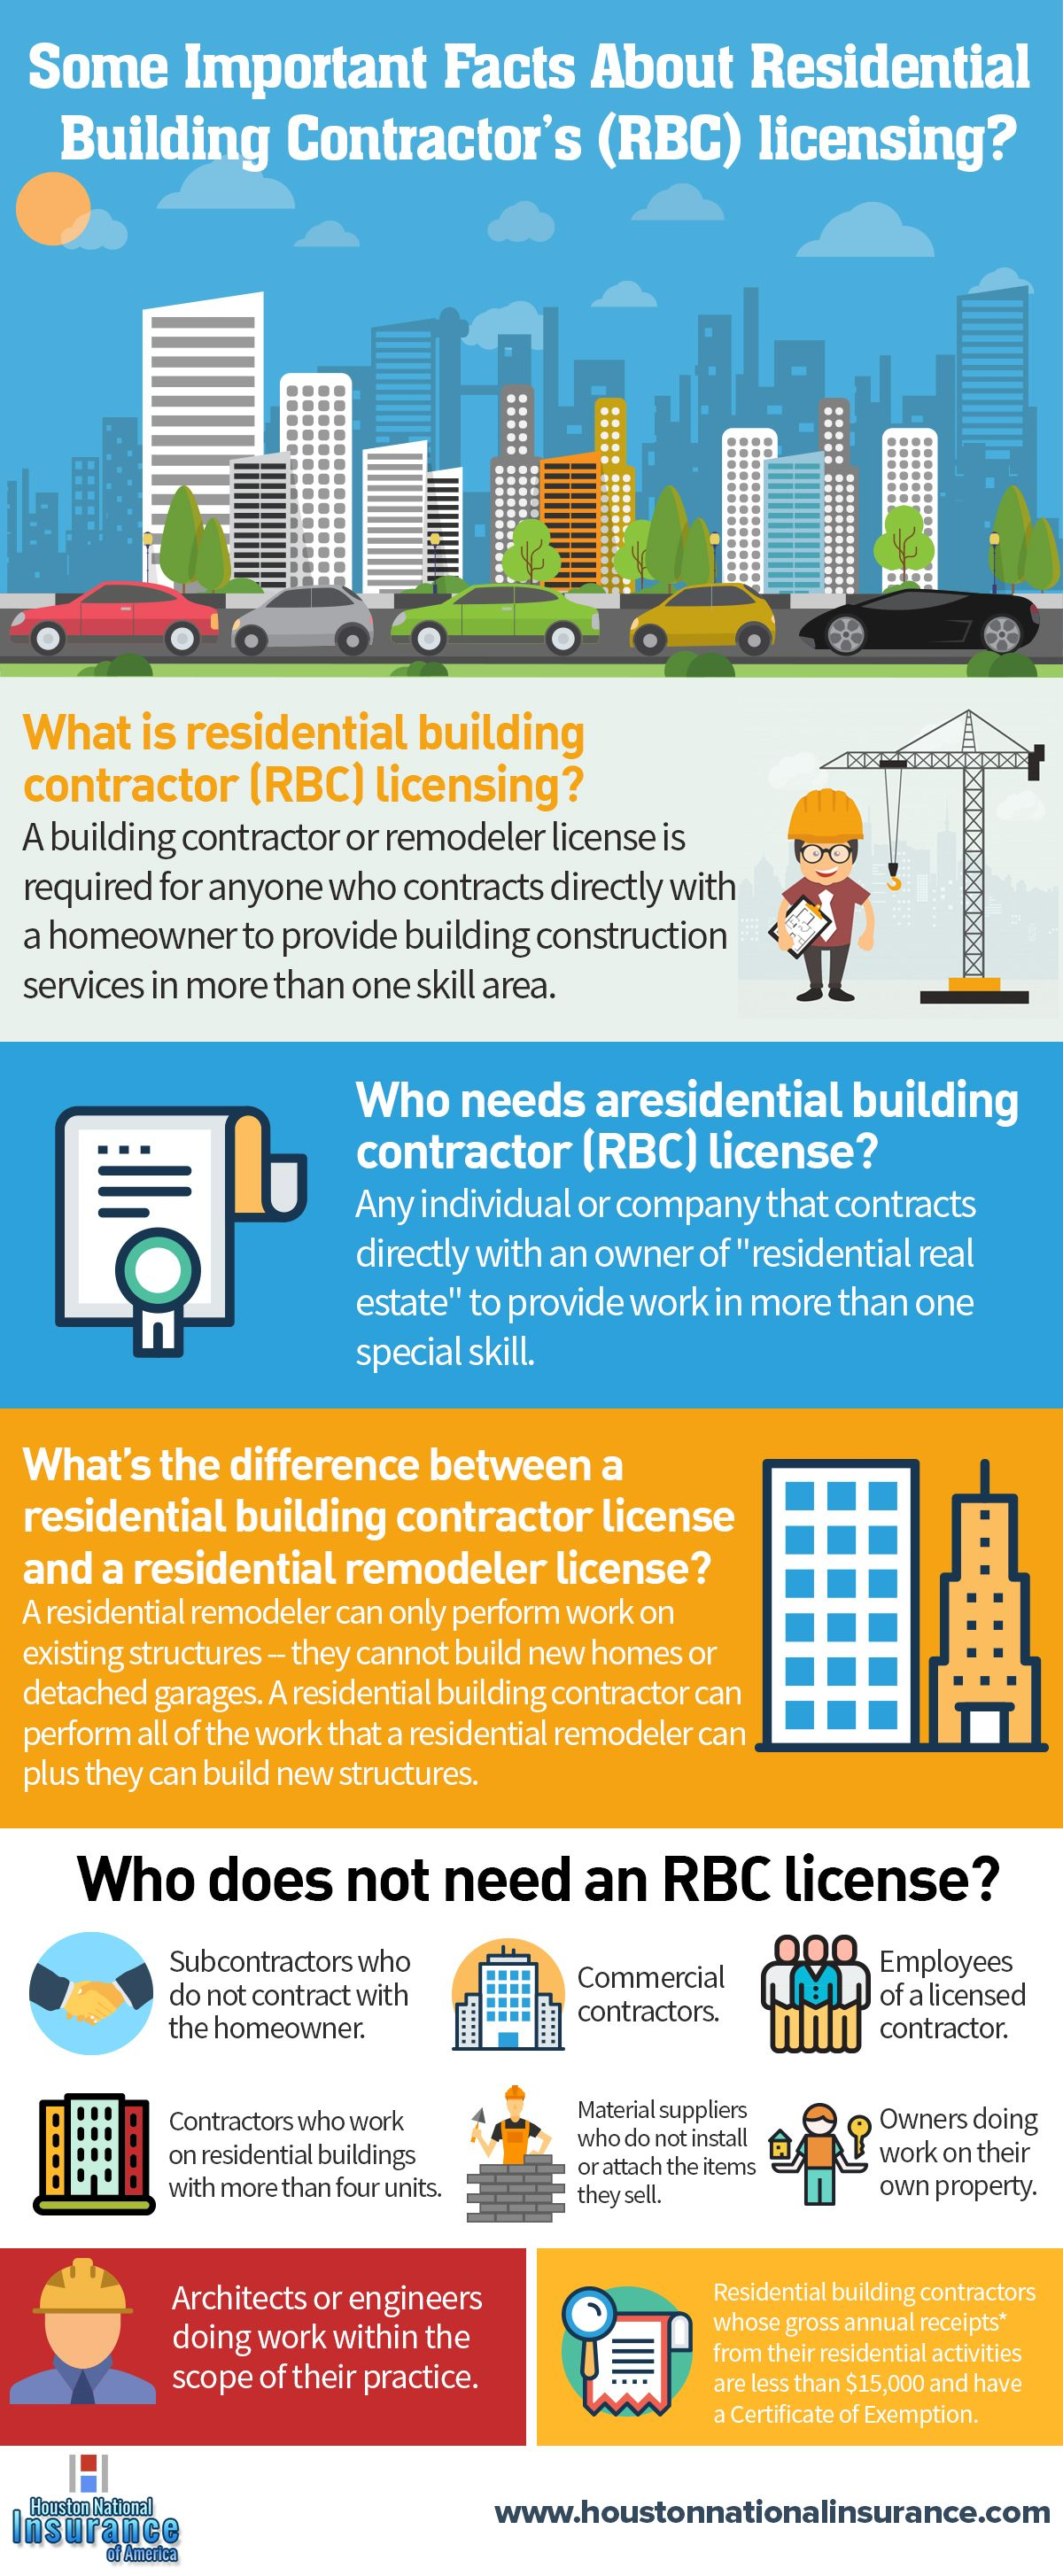 Some Important Facts About Residential Building